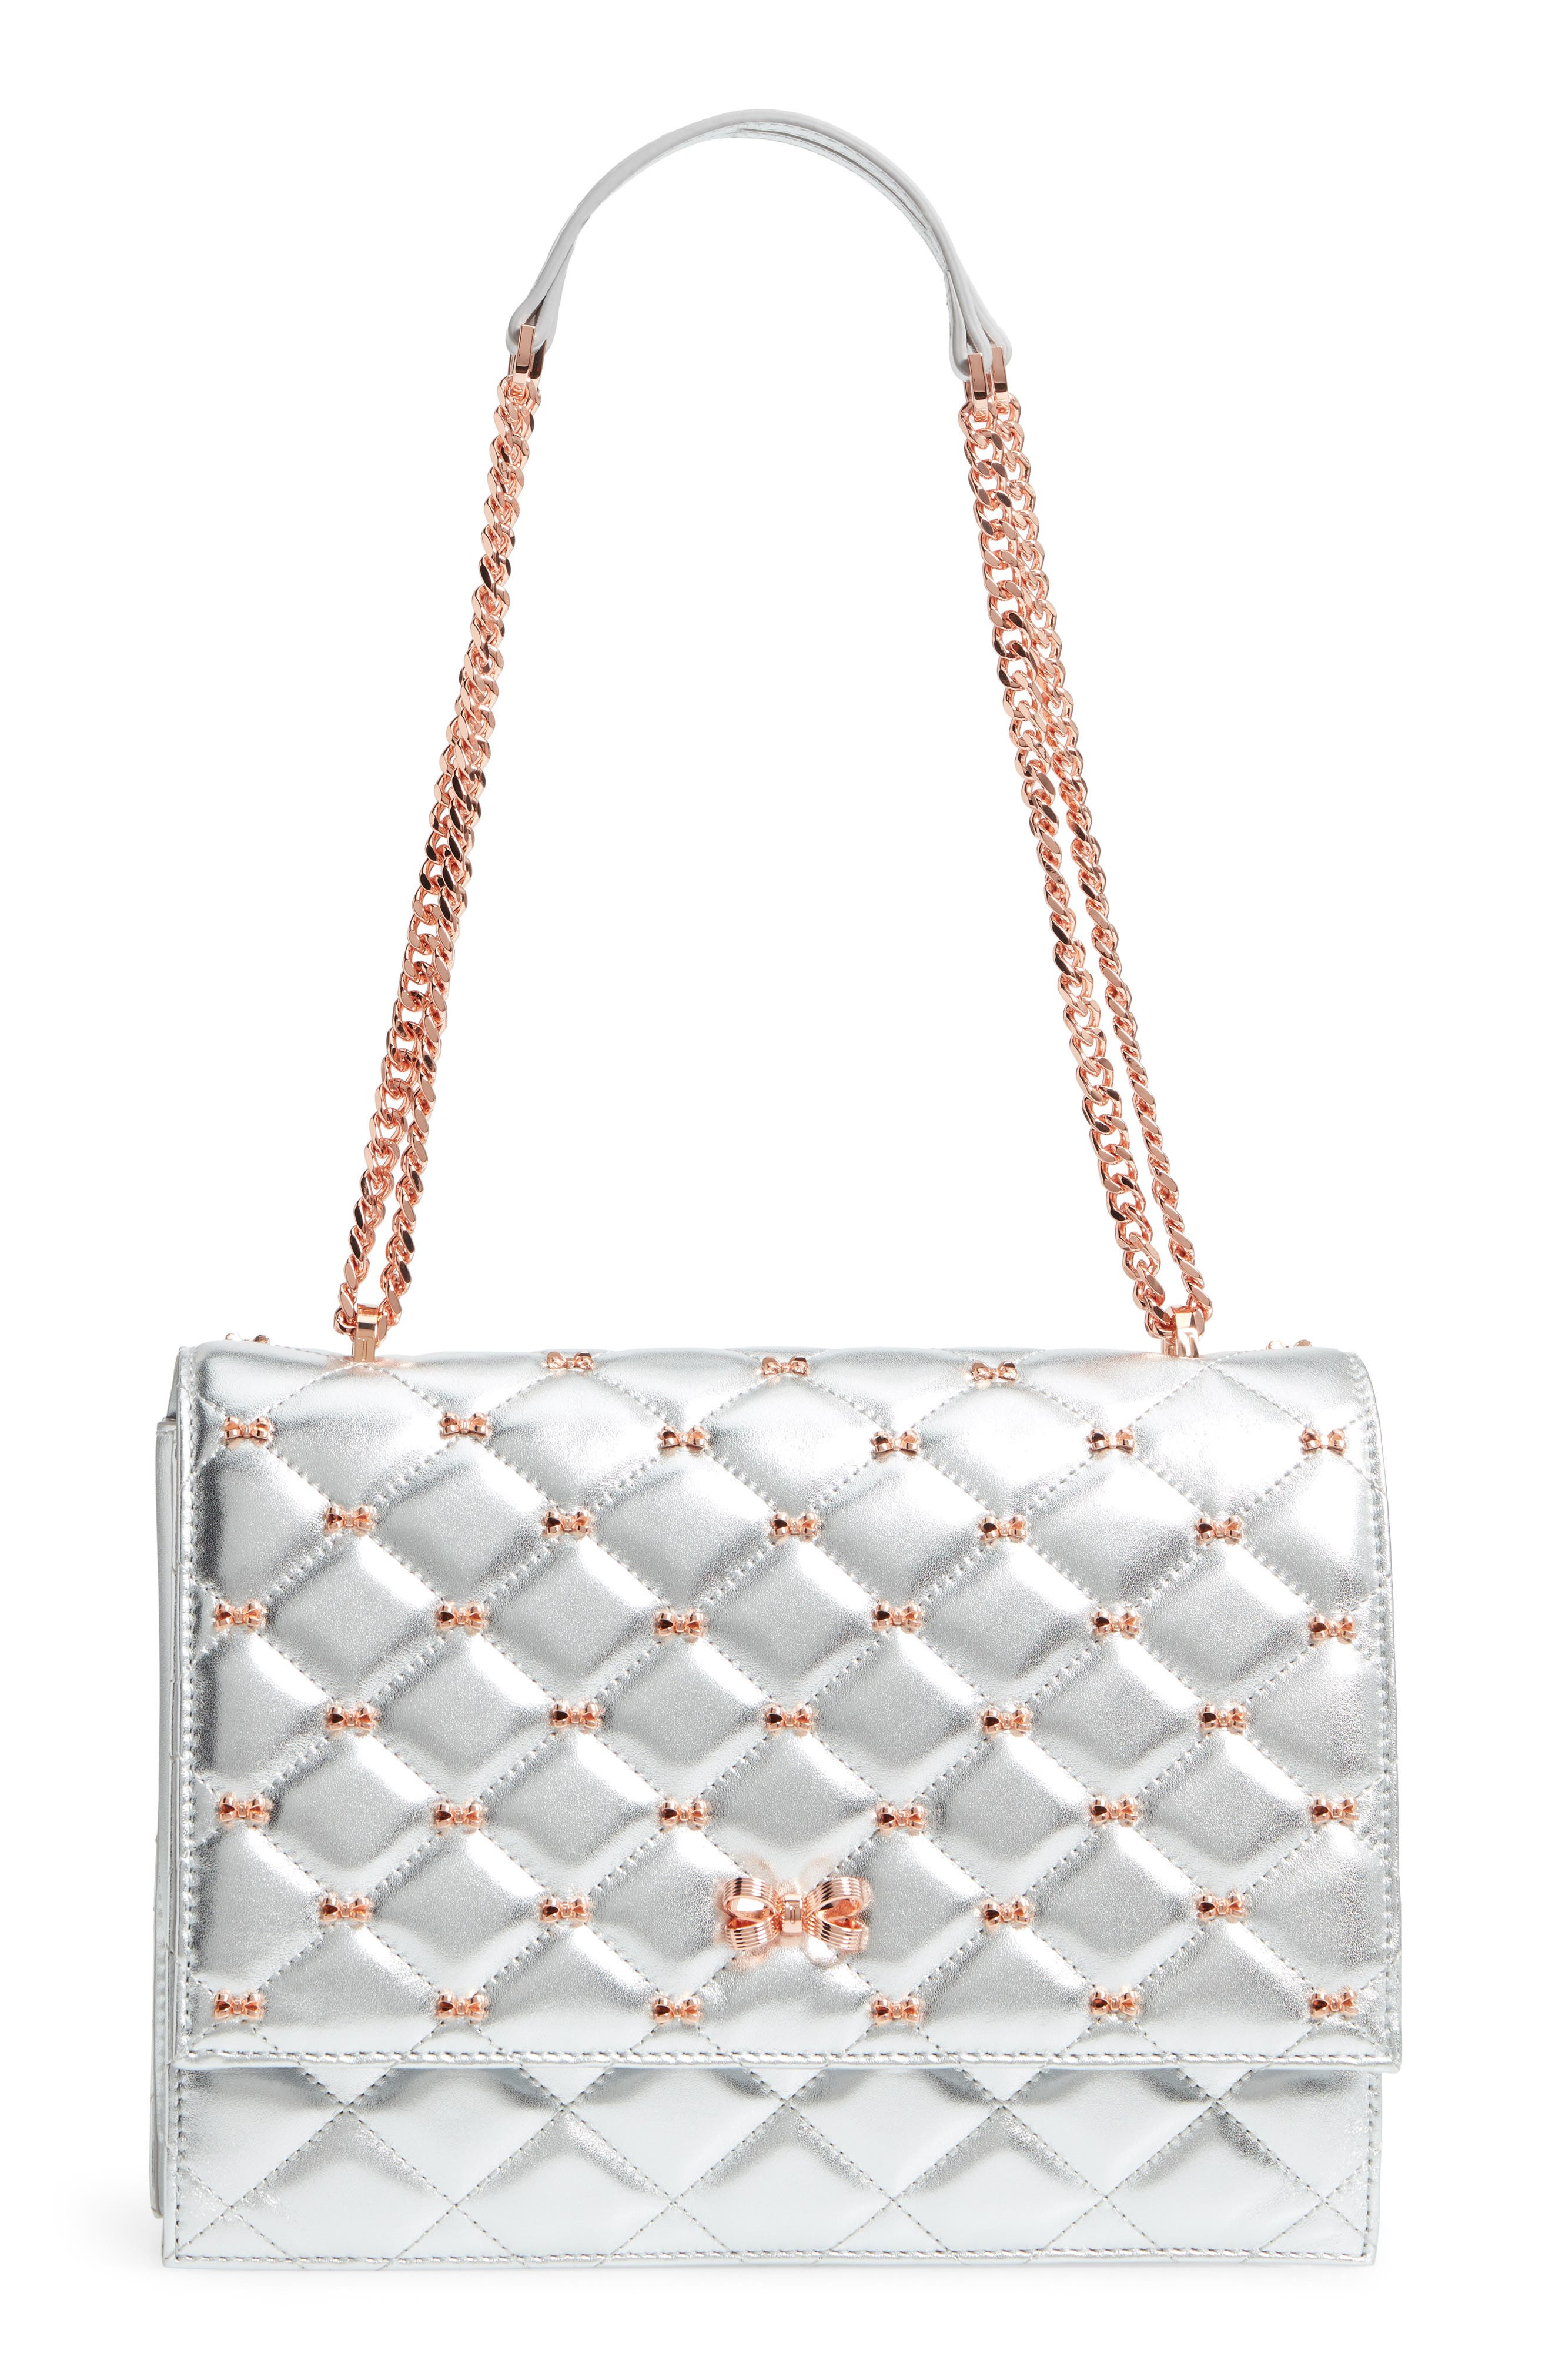 Bow Quilted Leather Shoulder Bag,                         Main,                         color, SILVER